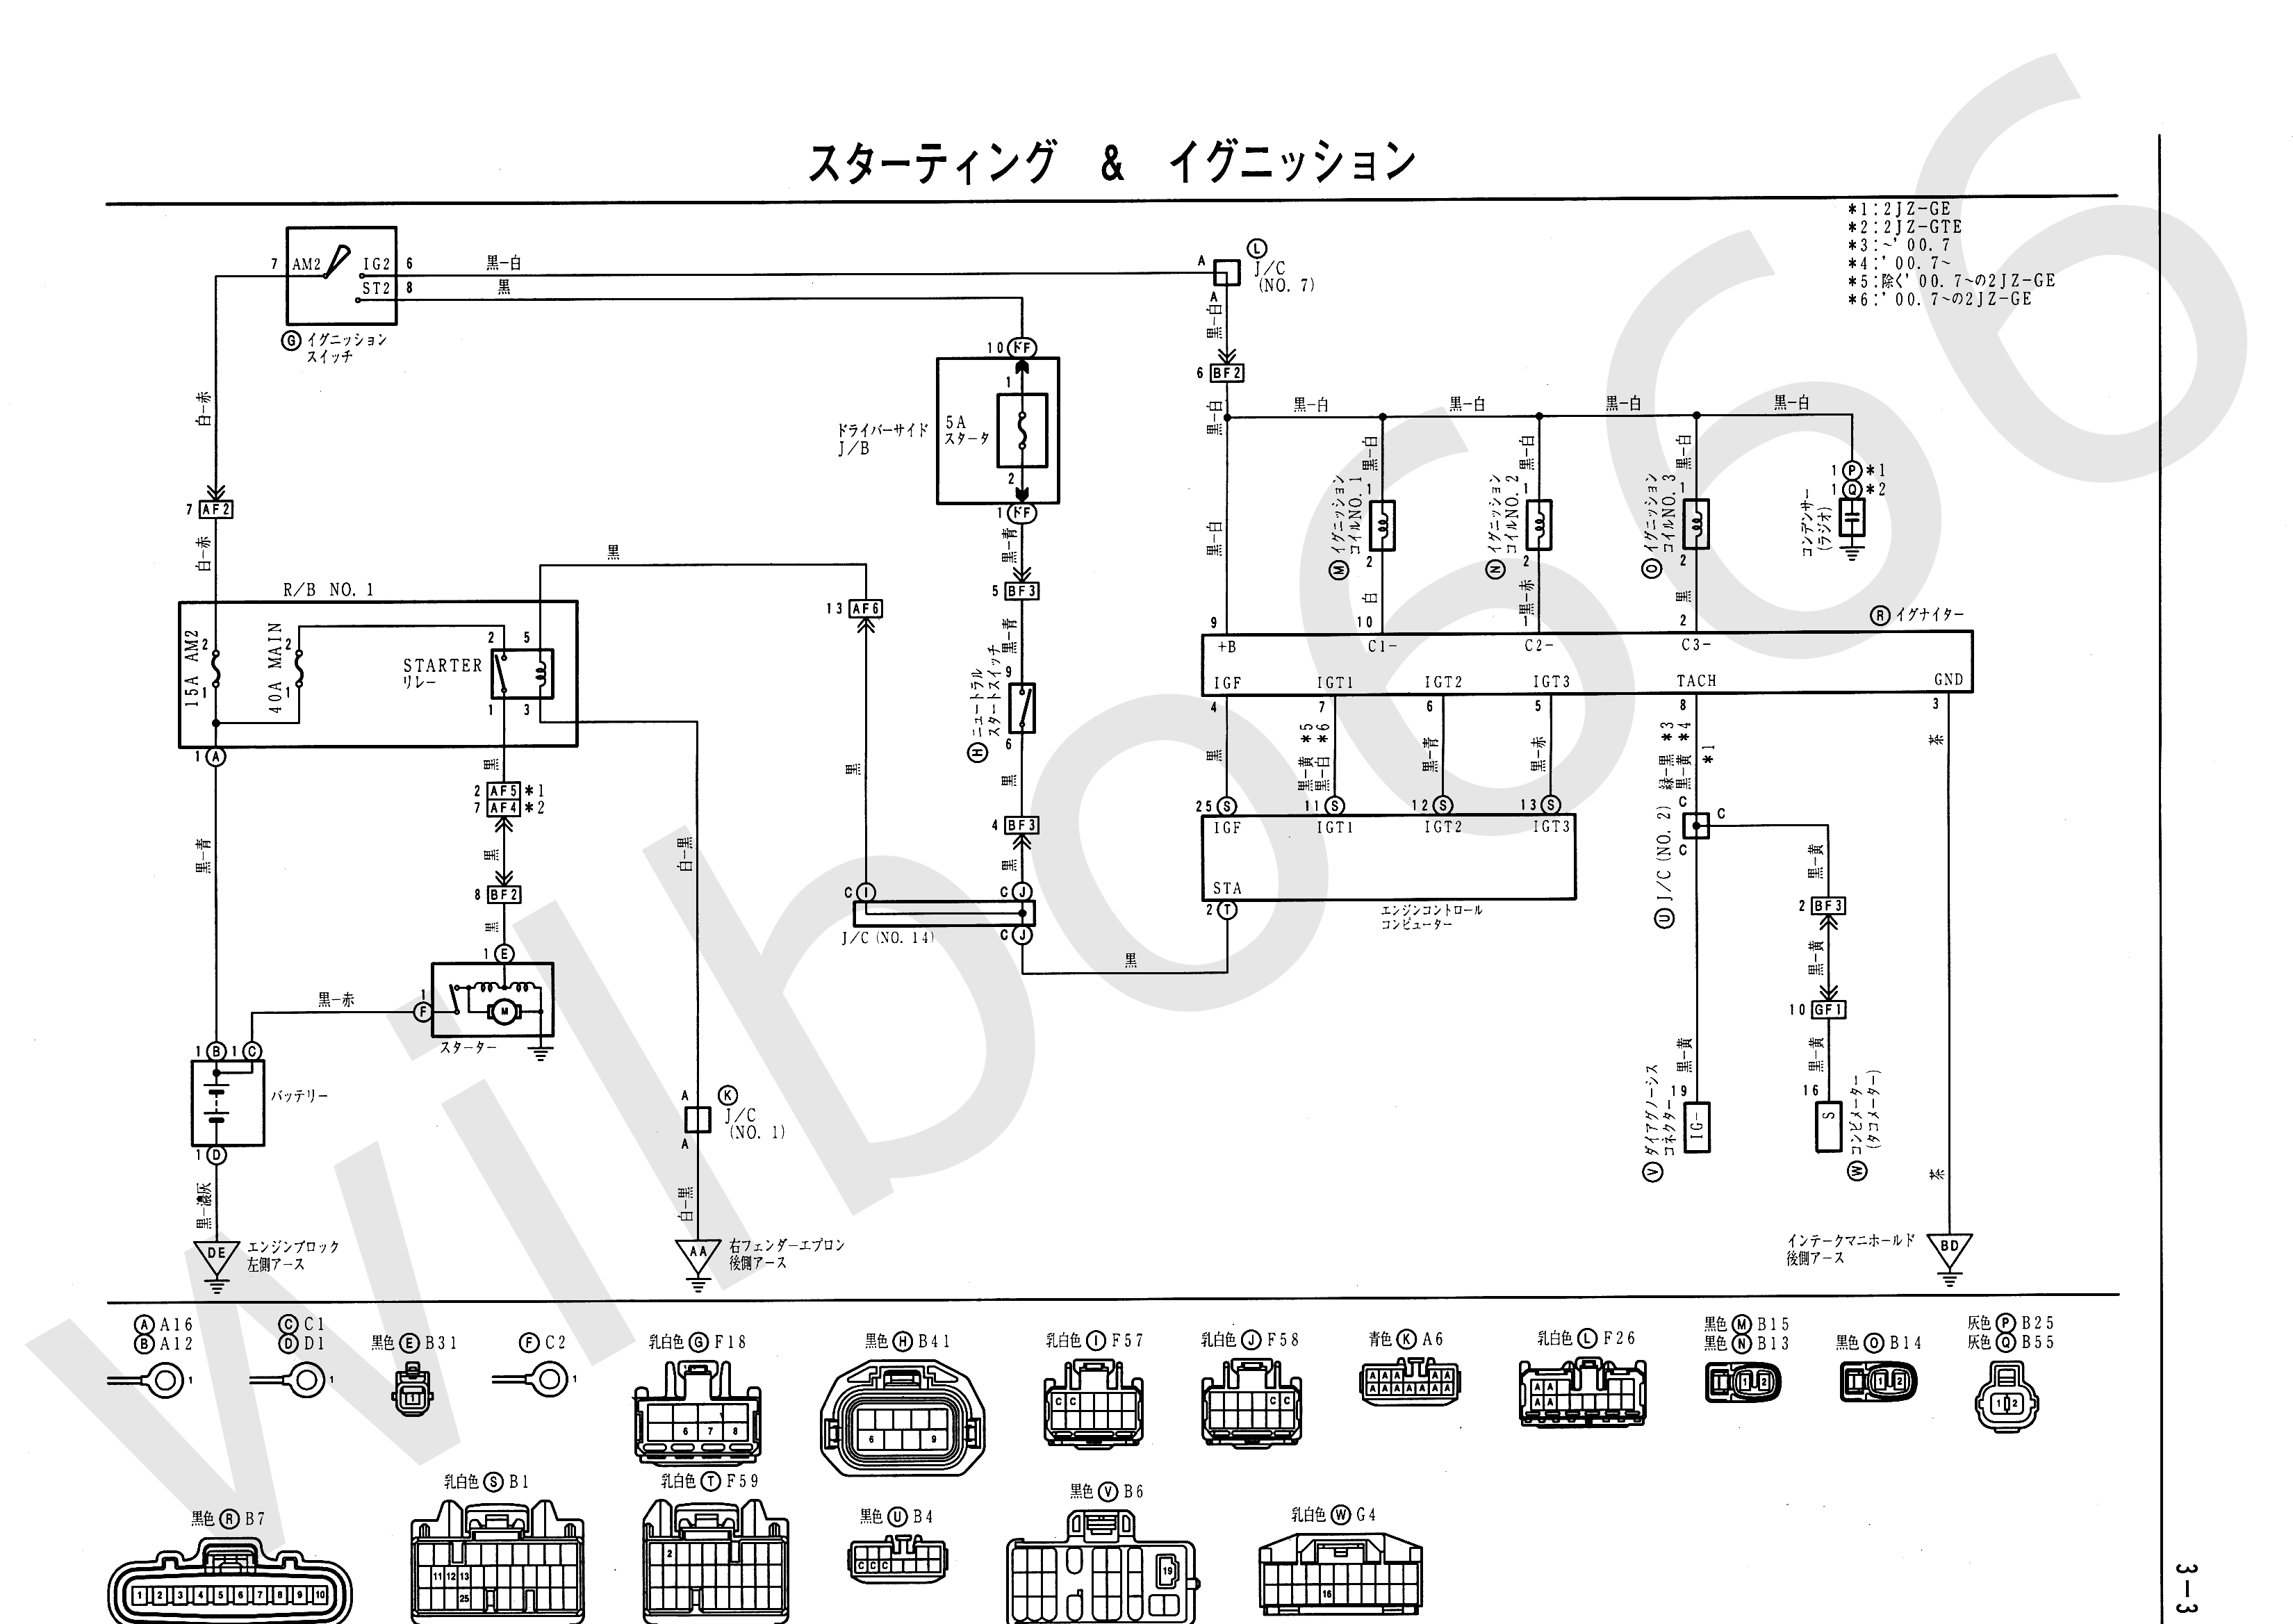 JZS161 Electrical Wiring Diagram 6748505 3 3 wilbo666 2jz gte vvti jzs161 aristo engine wiring  at panicattacktreatment.co